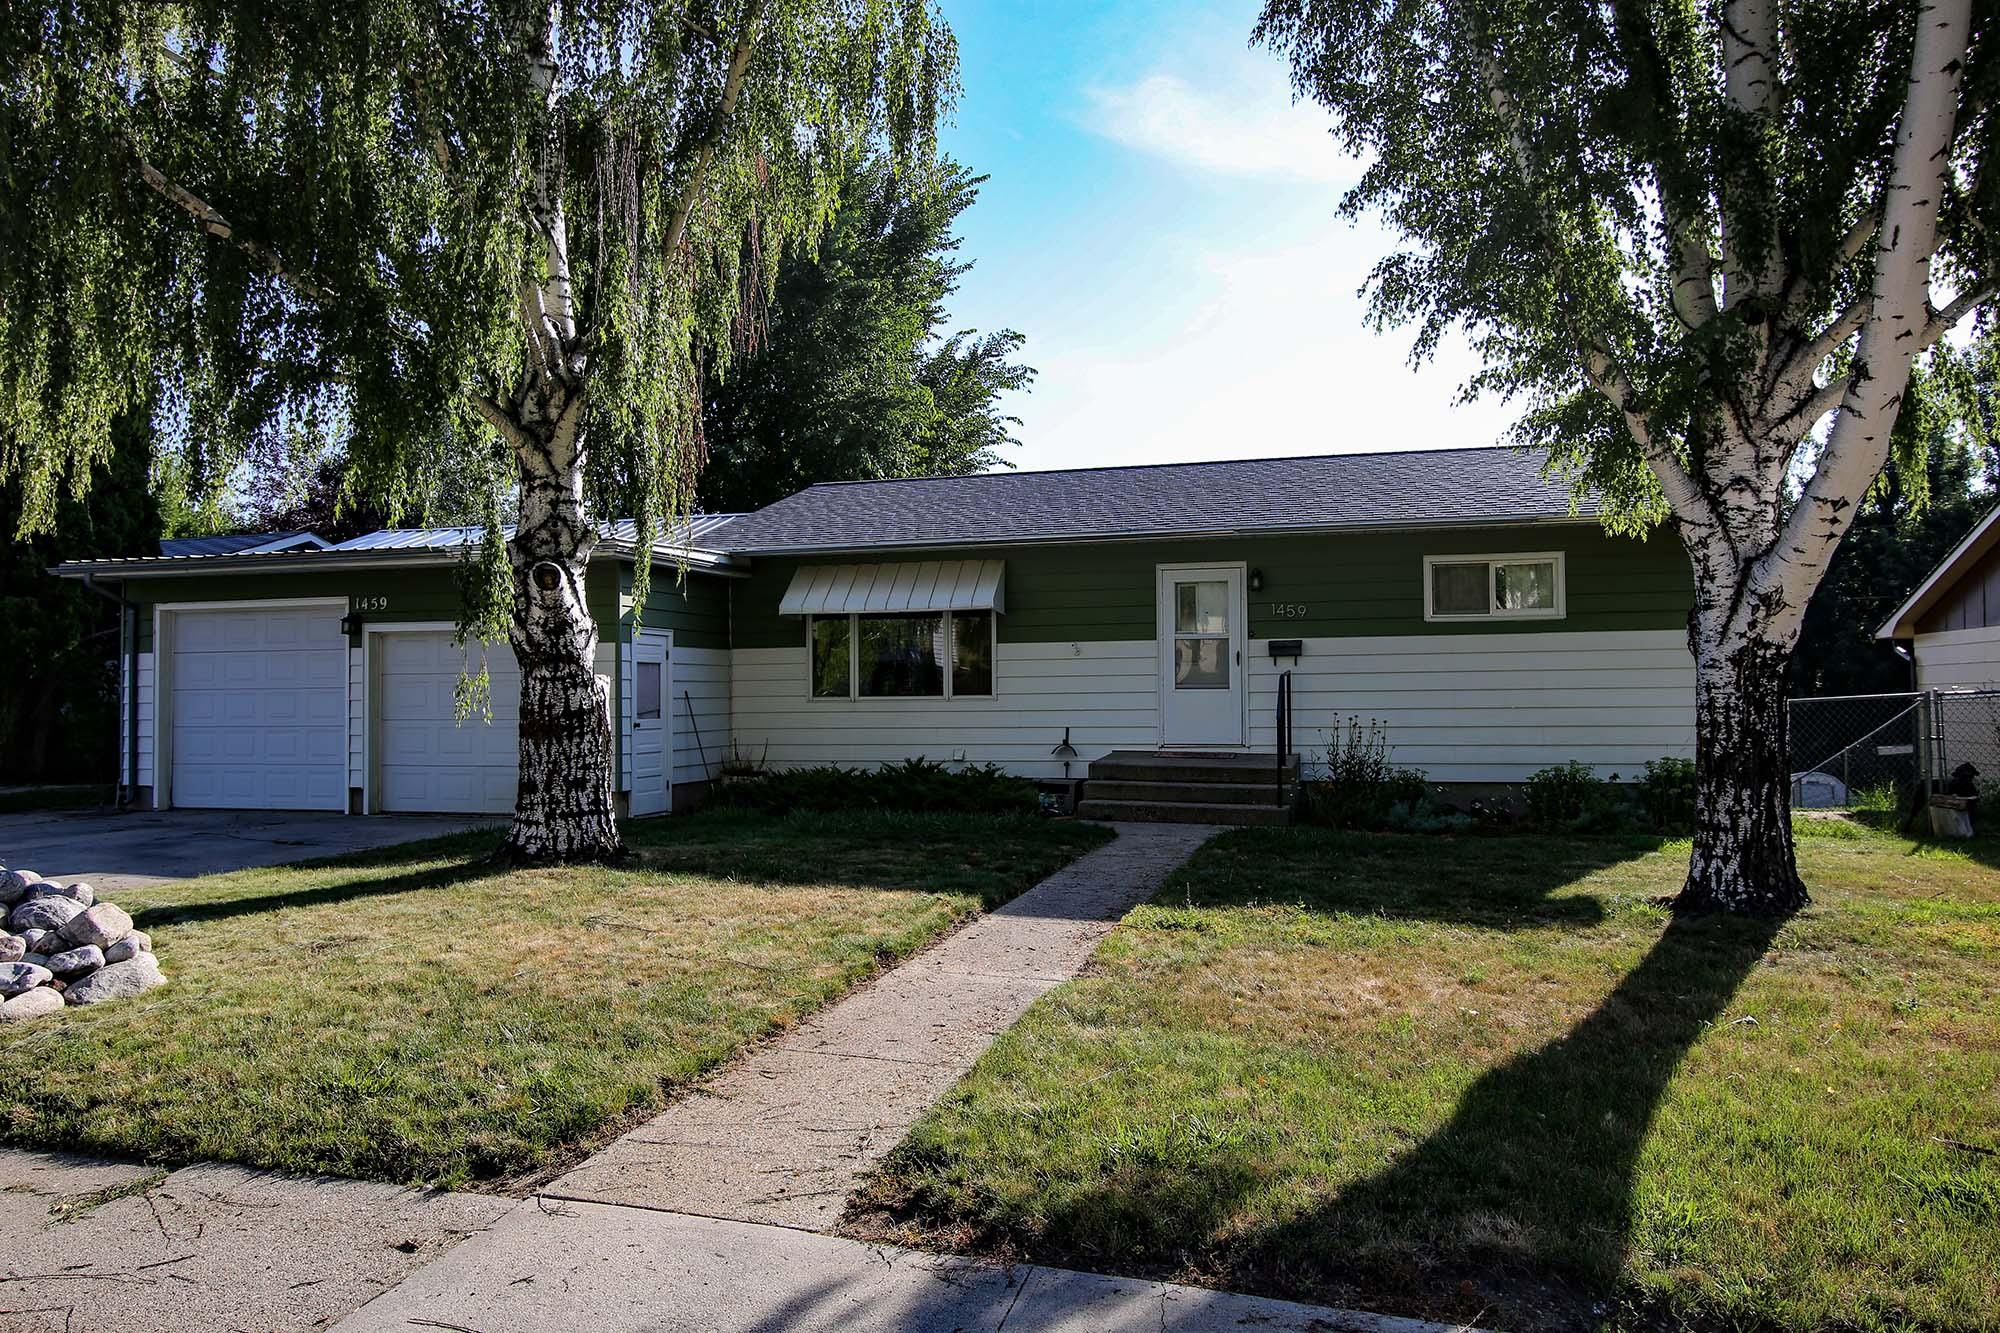 1459 Main Street, Sheridan, Wyoming 82801, 4 Bedrooms Bedrooms, ,2 BathroomsBathrooms,Residential,For Sale,Main,18-854